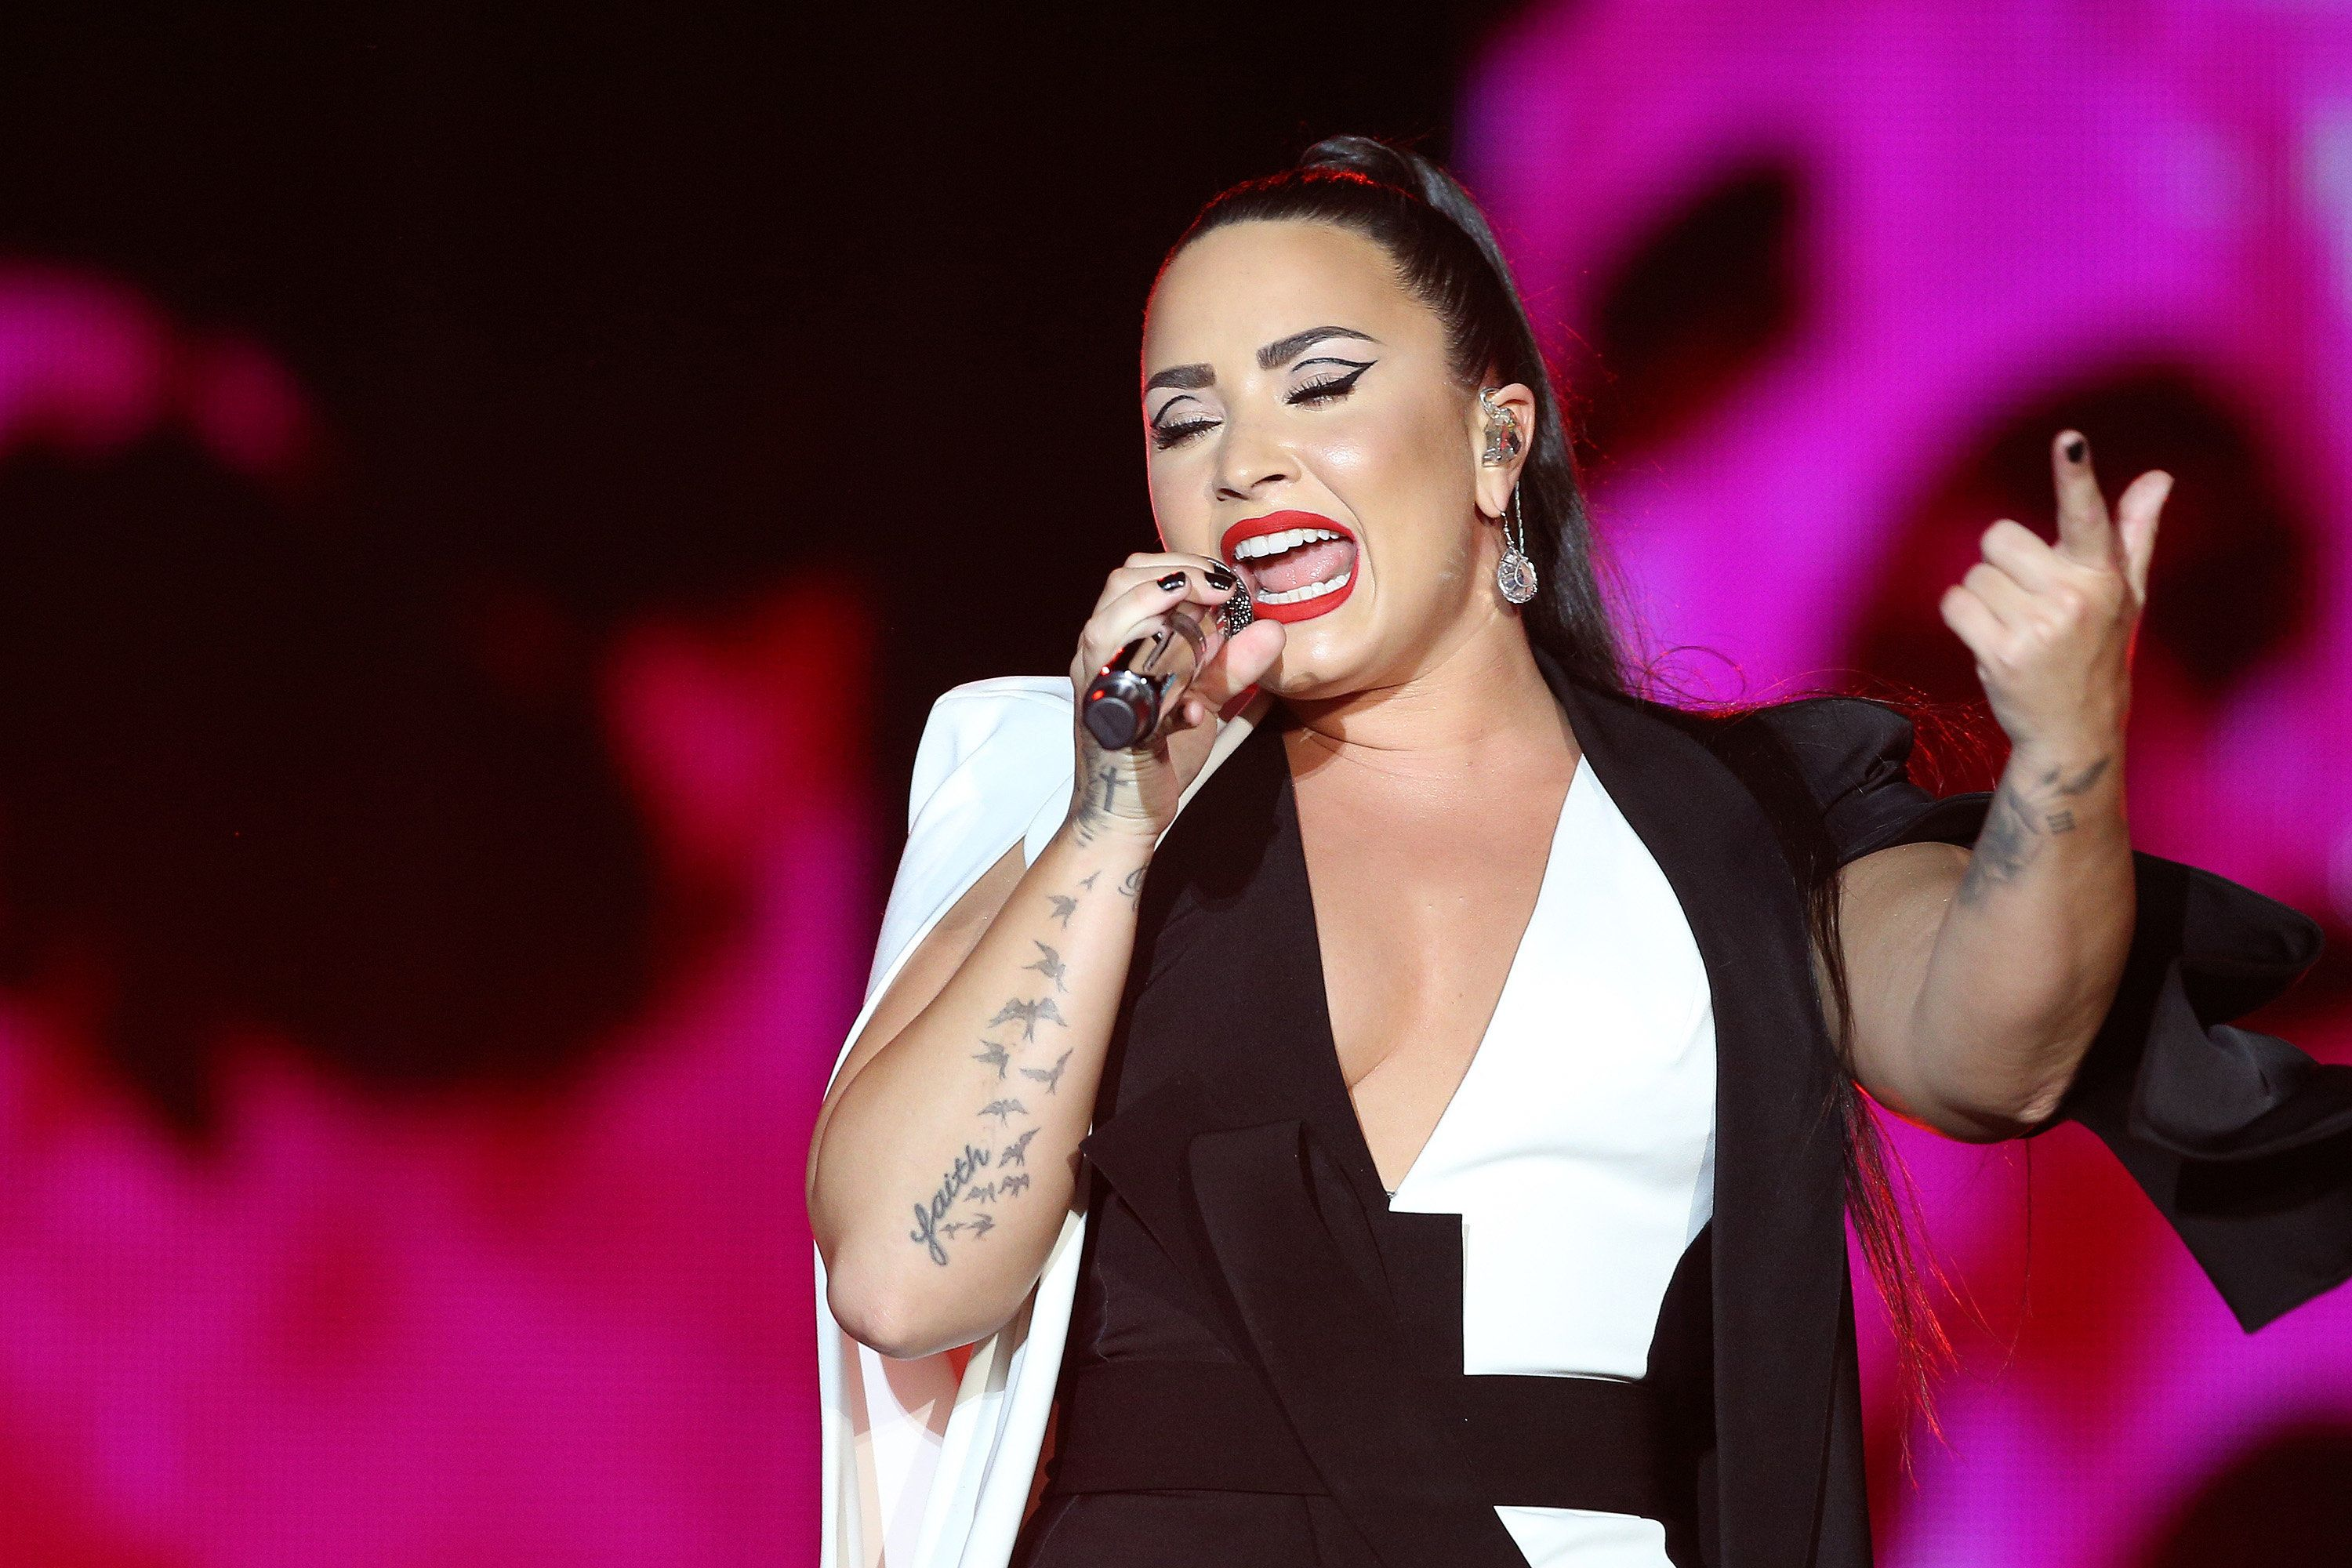 US singer Demi Lovato performs at the Rock in Rio Lisboa 2018 music festival in Lisbon, Portugal, on June 24, 2018. ( Photo by Pedro Fiúza/NurPhoto via Getty Images)